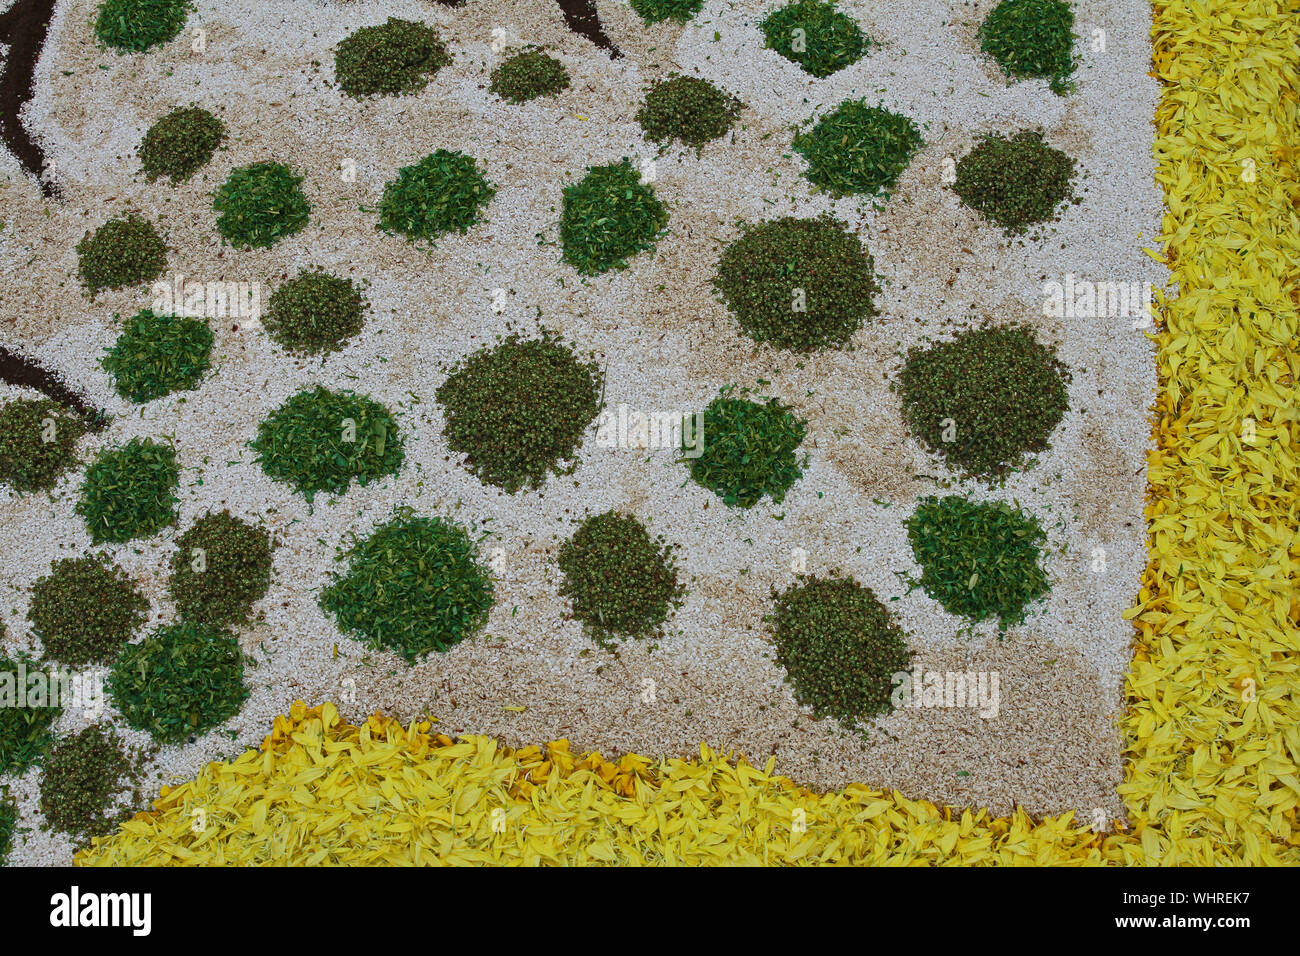 flower petals, grains, rice, beans and seeds making an abstract pattern in of Castelraimondo in the Marche region of Italy to celebrate Corpus Christi Stock Photo